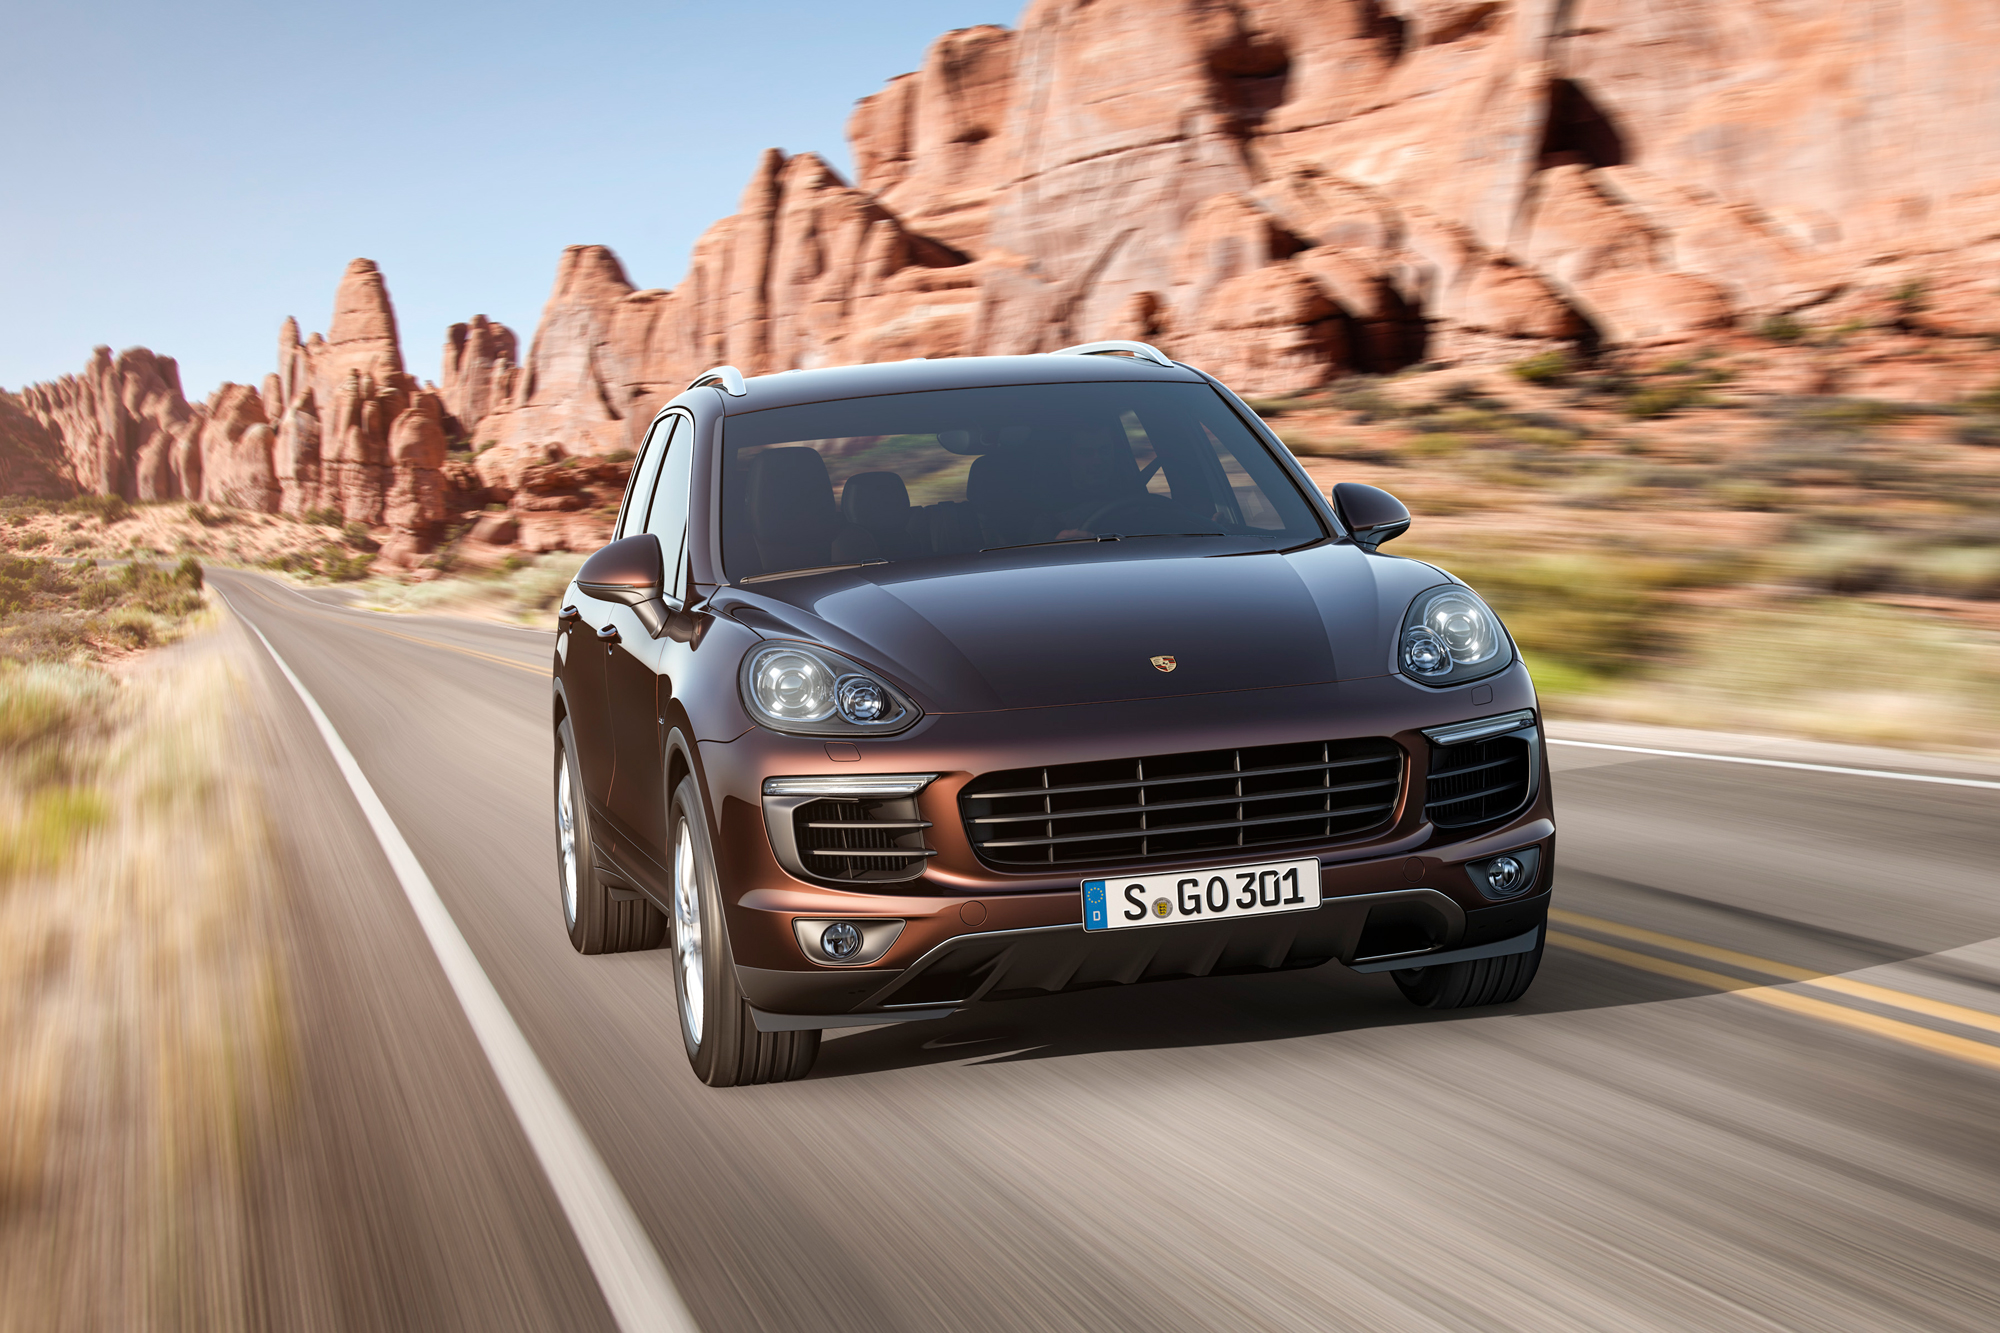 porsche the cayenne launch essay Custom porsche: the cayenne launch, portuguese version hbr case study recommendation memo & case analysis for just $11 mba & executive mba level sales & marketing case memo based on hbr framework.